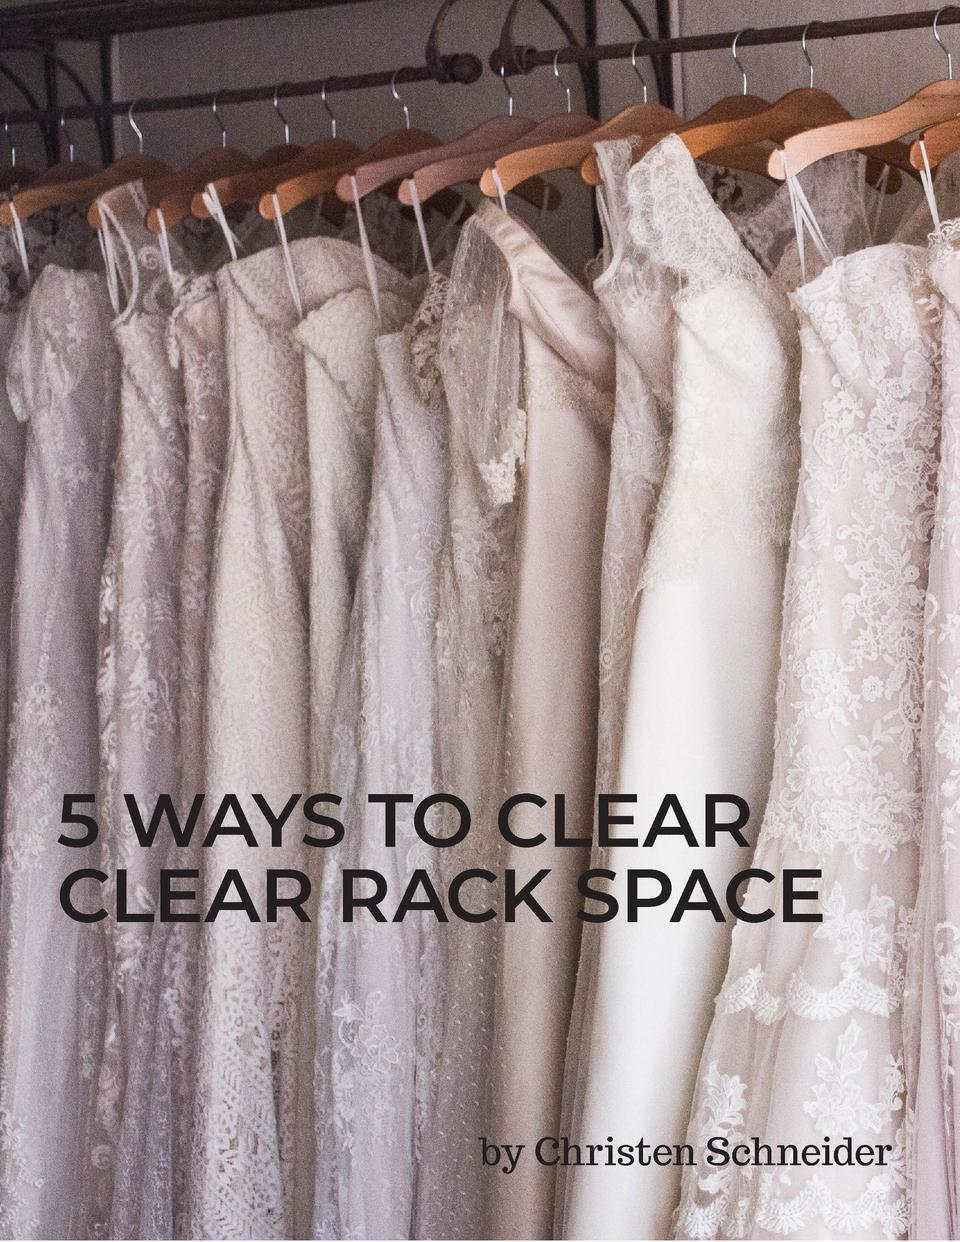 5 WAYS TO CLEAR CLEAR RACK SPACE by Christen Schneider